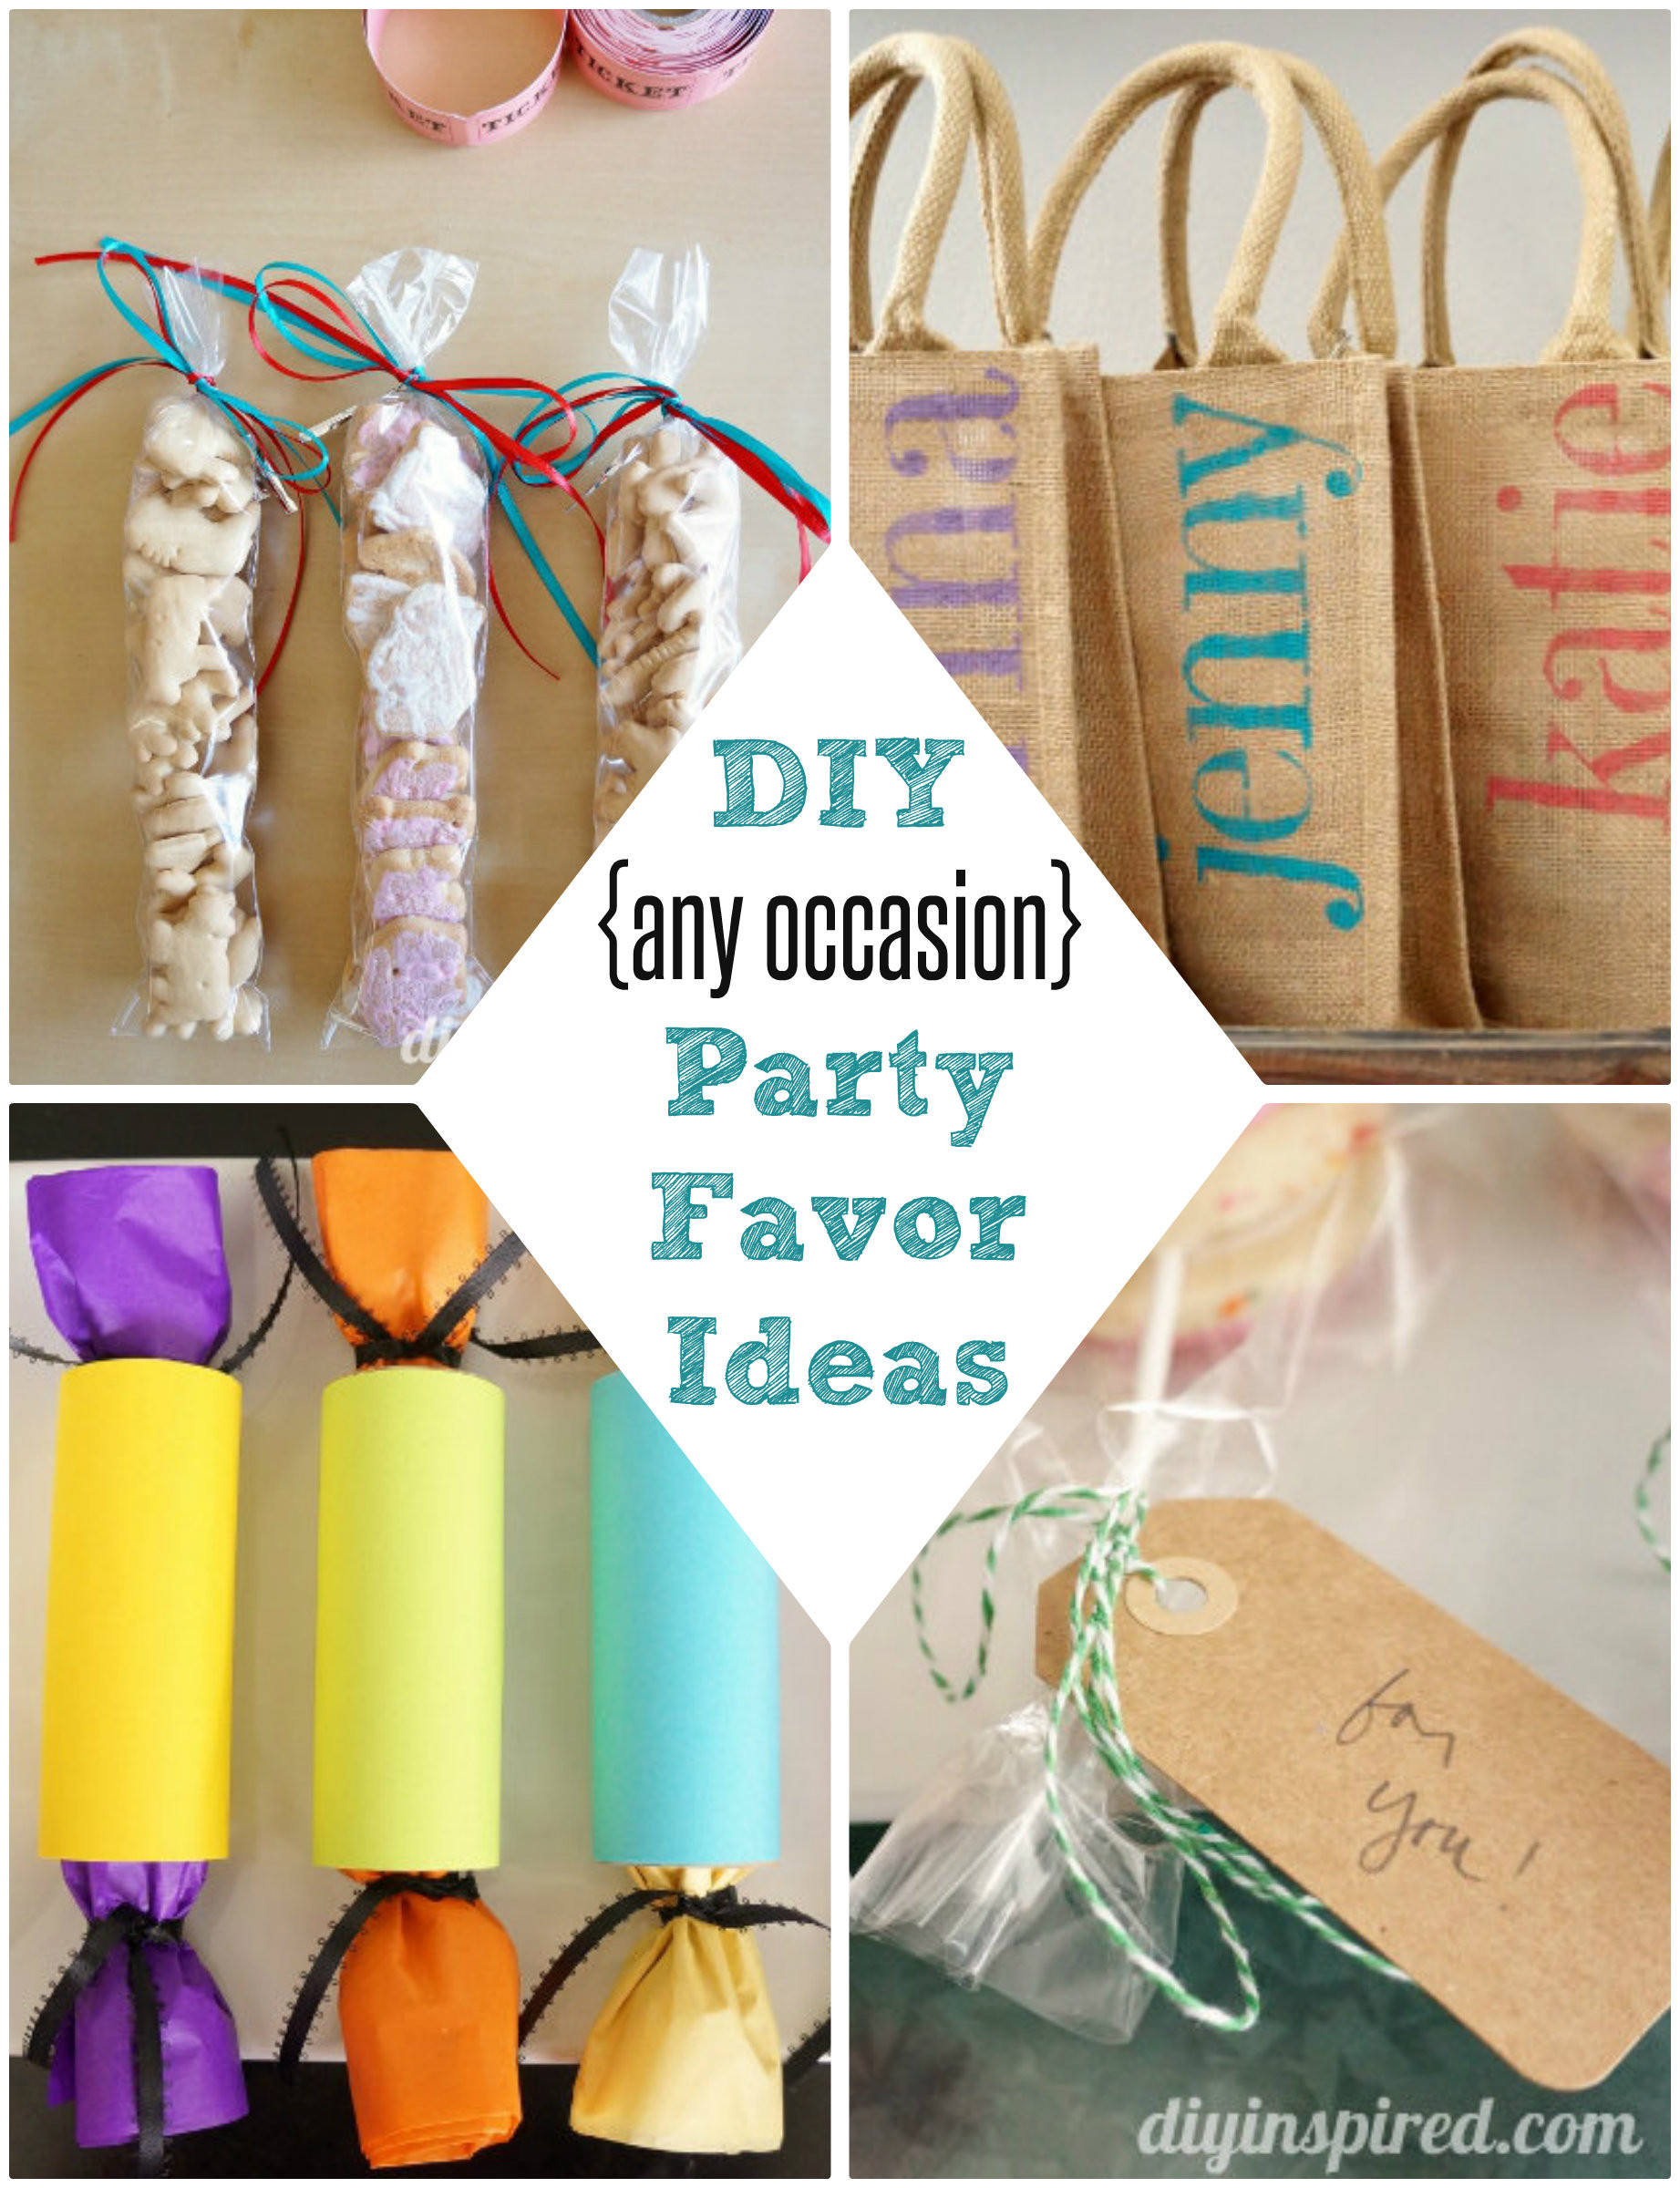 Best ideas about Homemade Birthday Decorations For Adults . Save or Pin DIY Party Favor Ideas DIY Inspired Now.